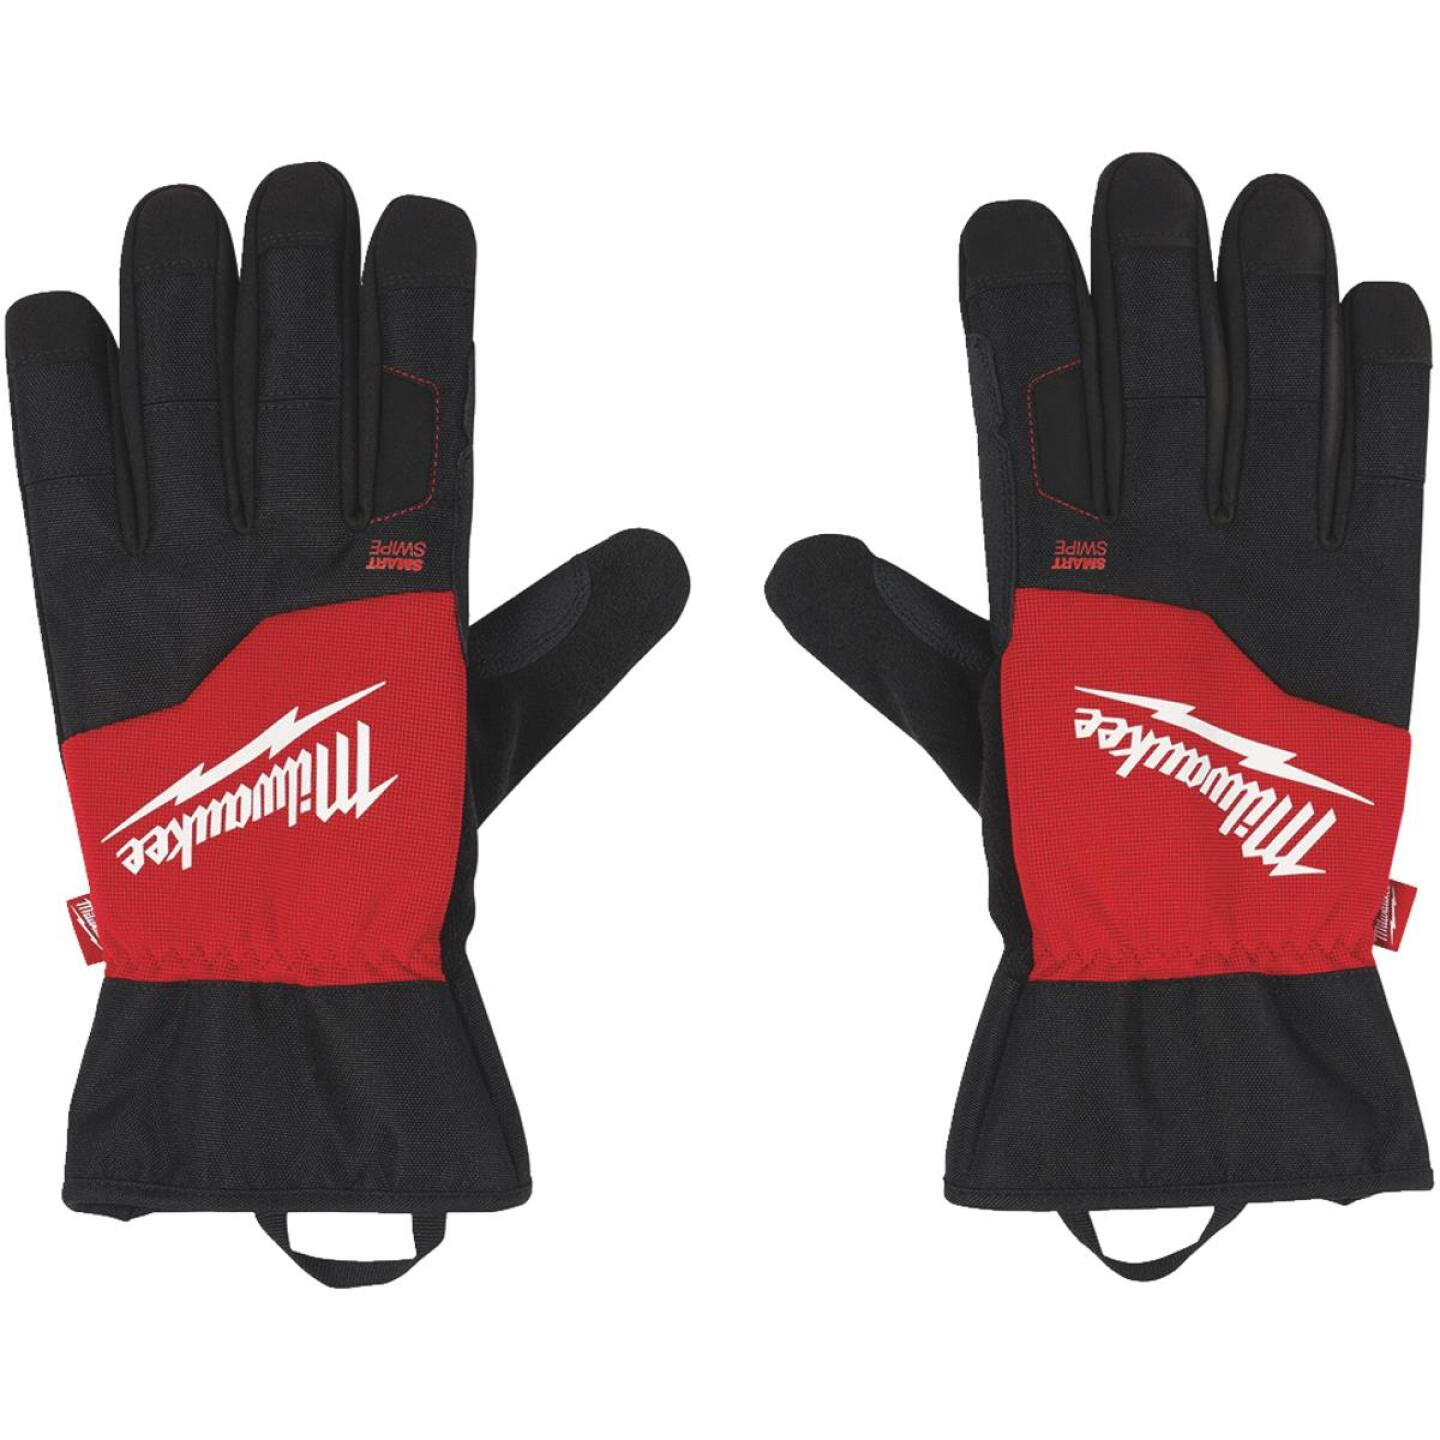 Milwaukee Men's XL Synthetic Winter Performance Glove Image 2